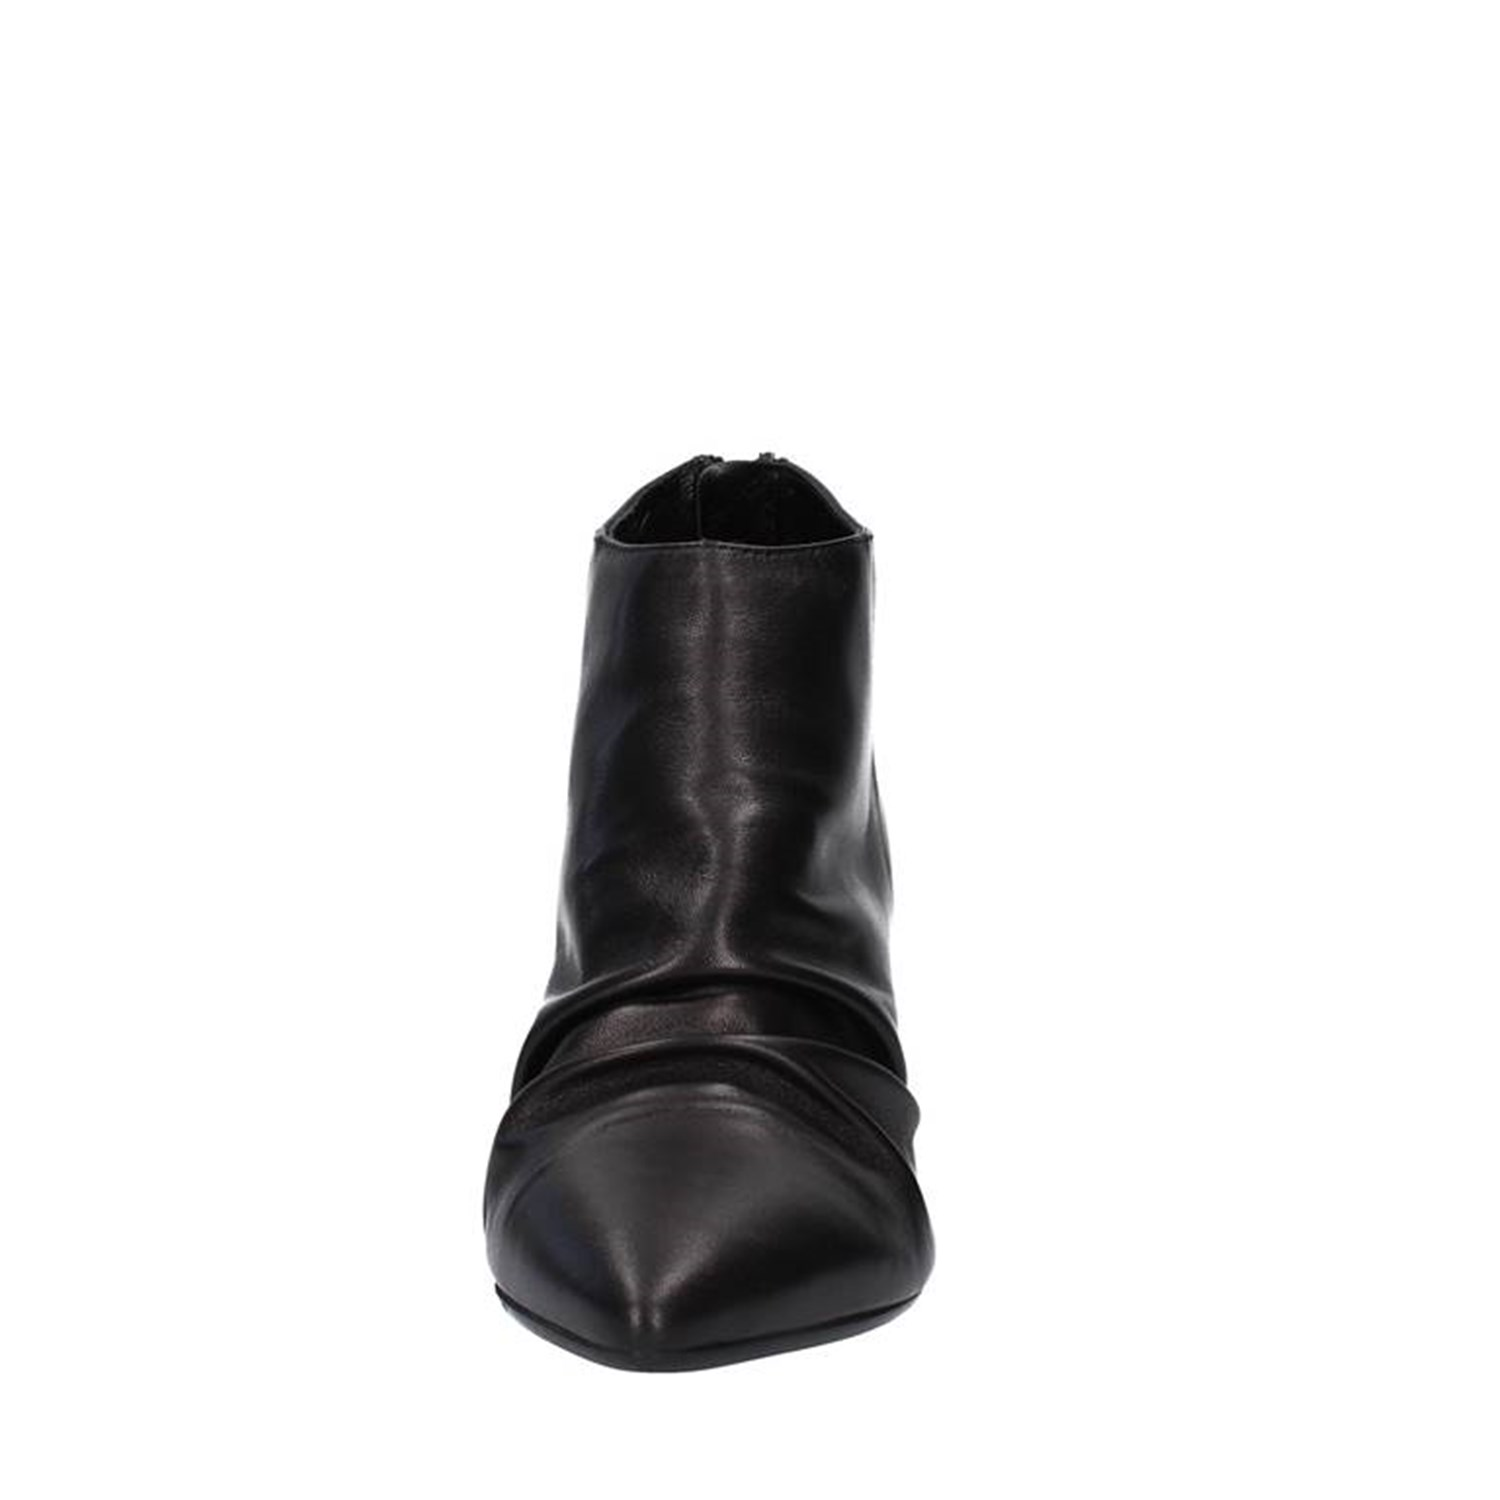 Norah Shoes Woman boots BLACK T195